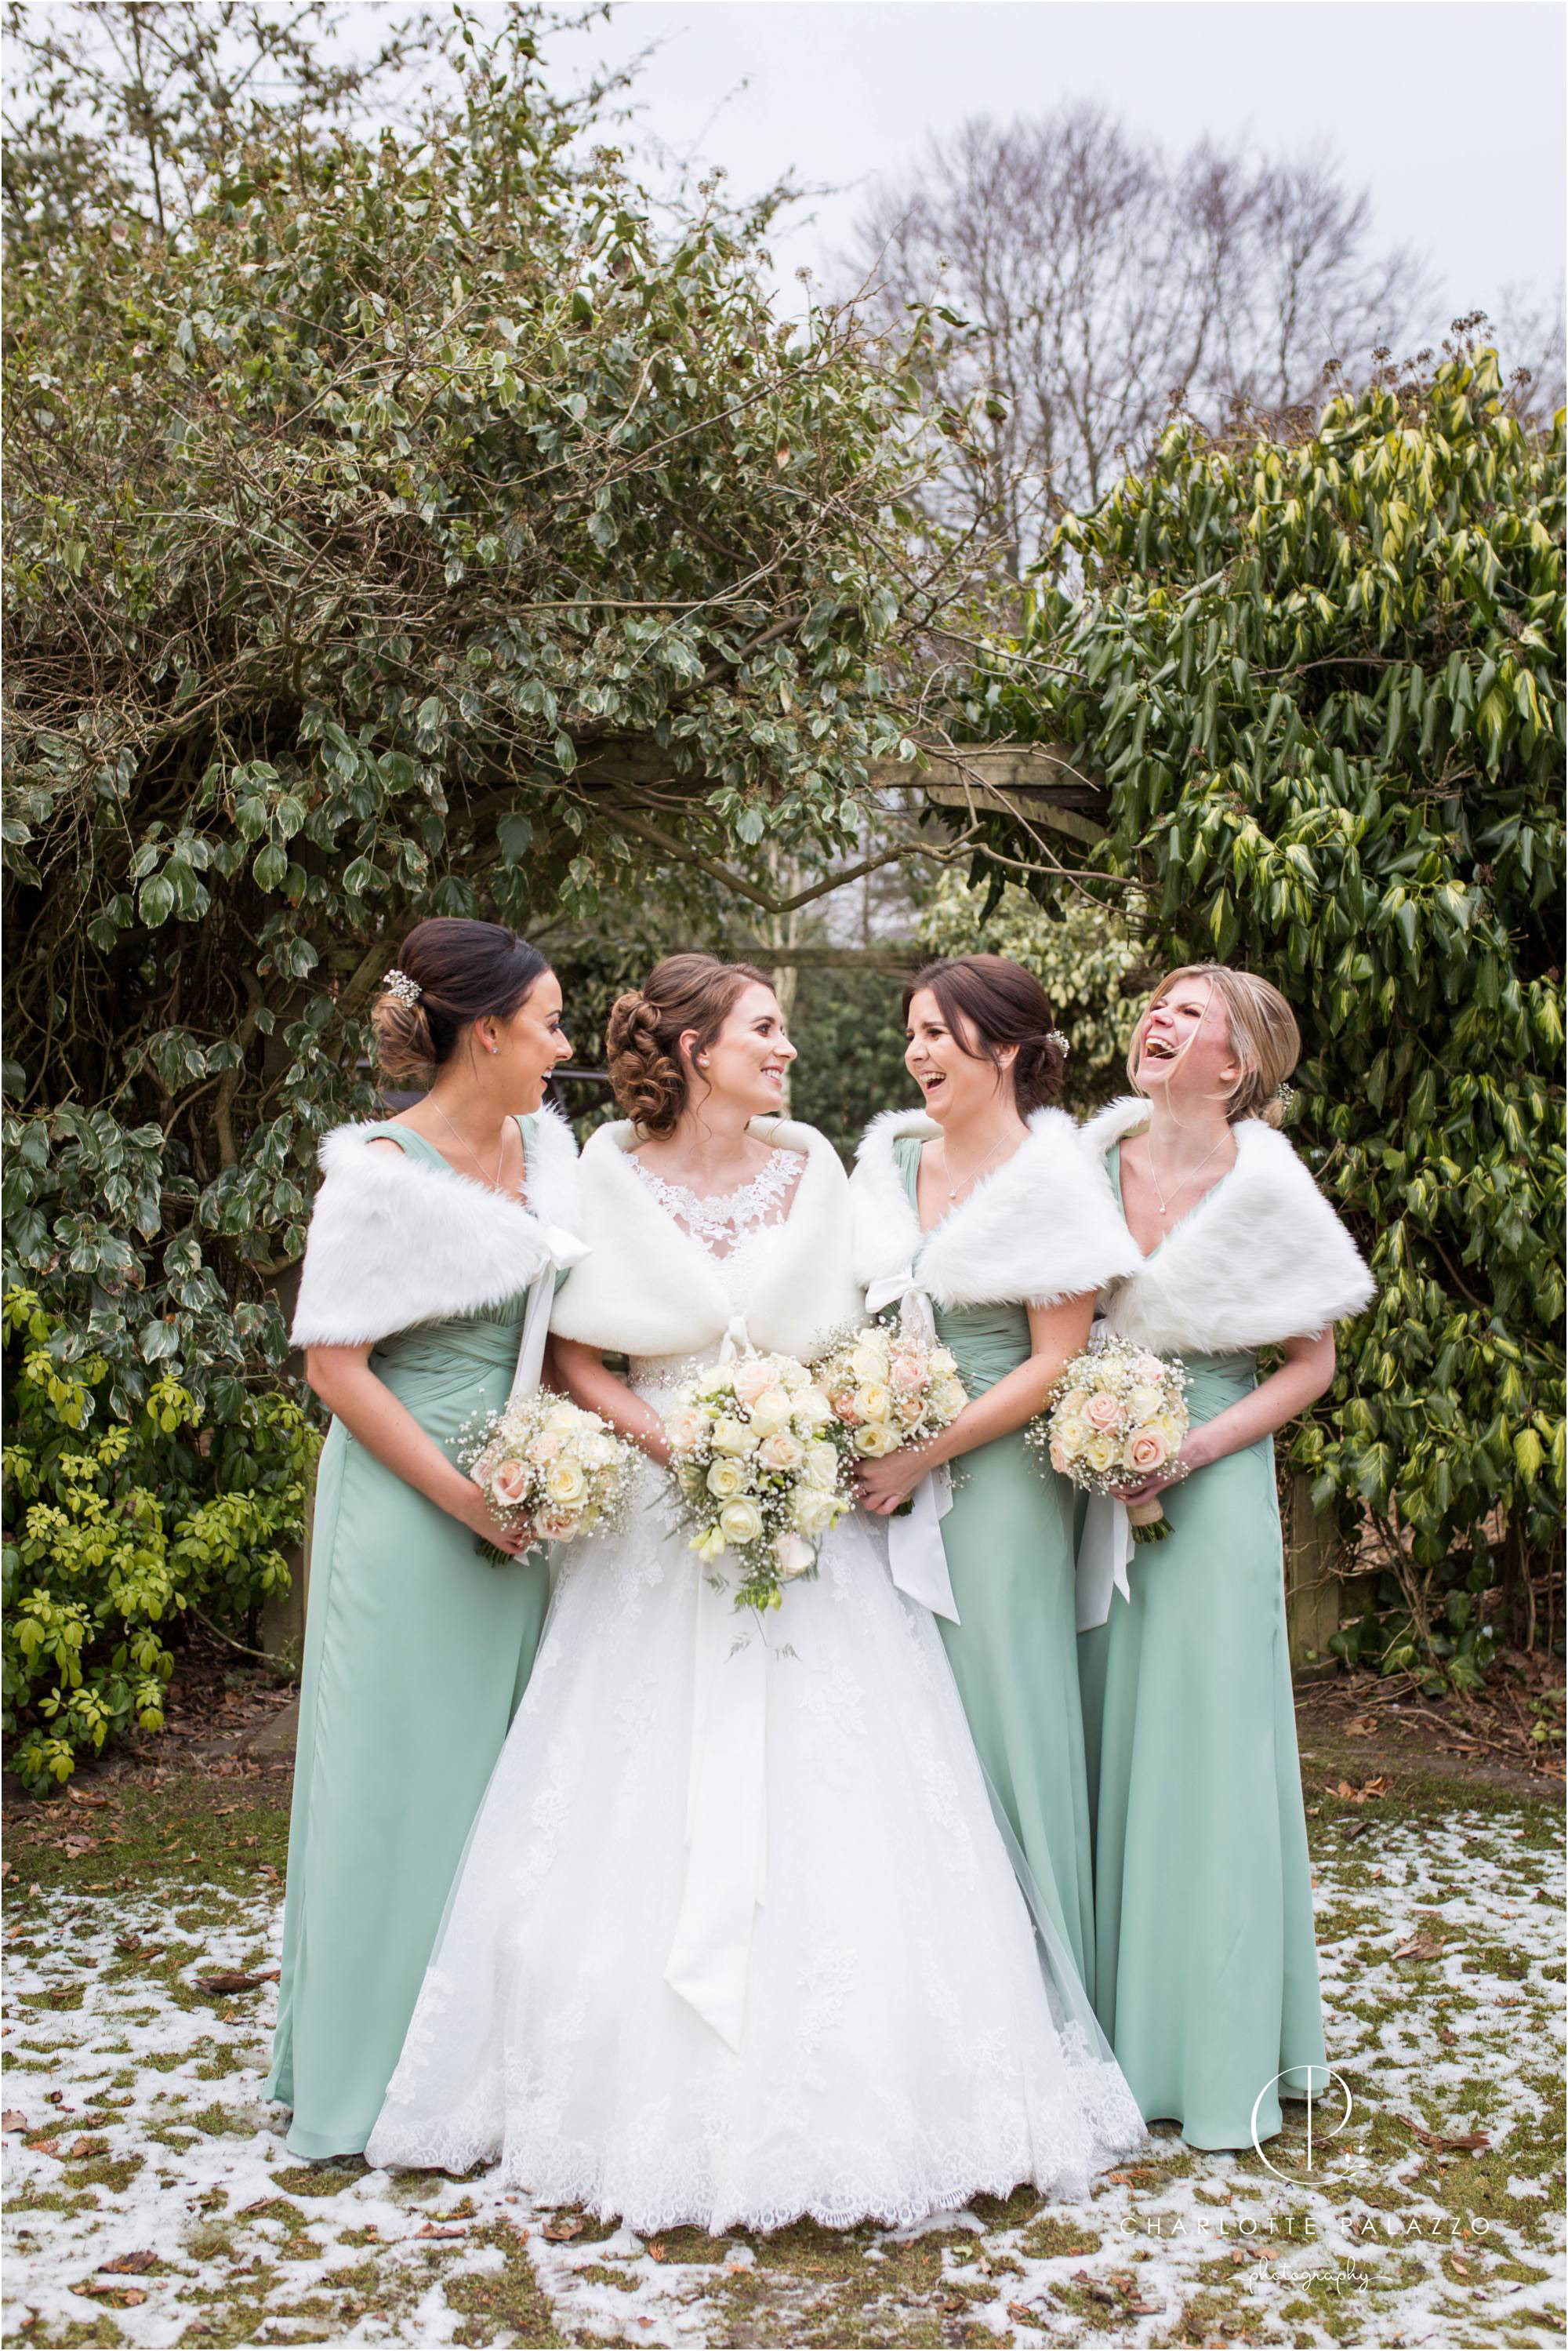 Kirst_Peter_Snowy_Nunsmere_Hall_Winter_Wedding_Cheshire_Photographer_0015.jpg